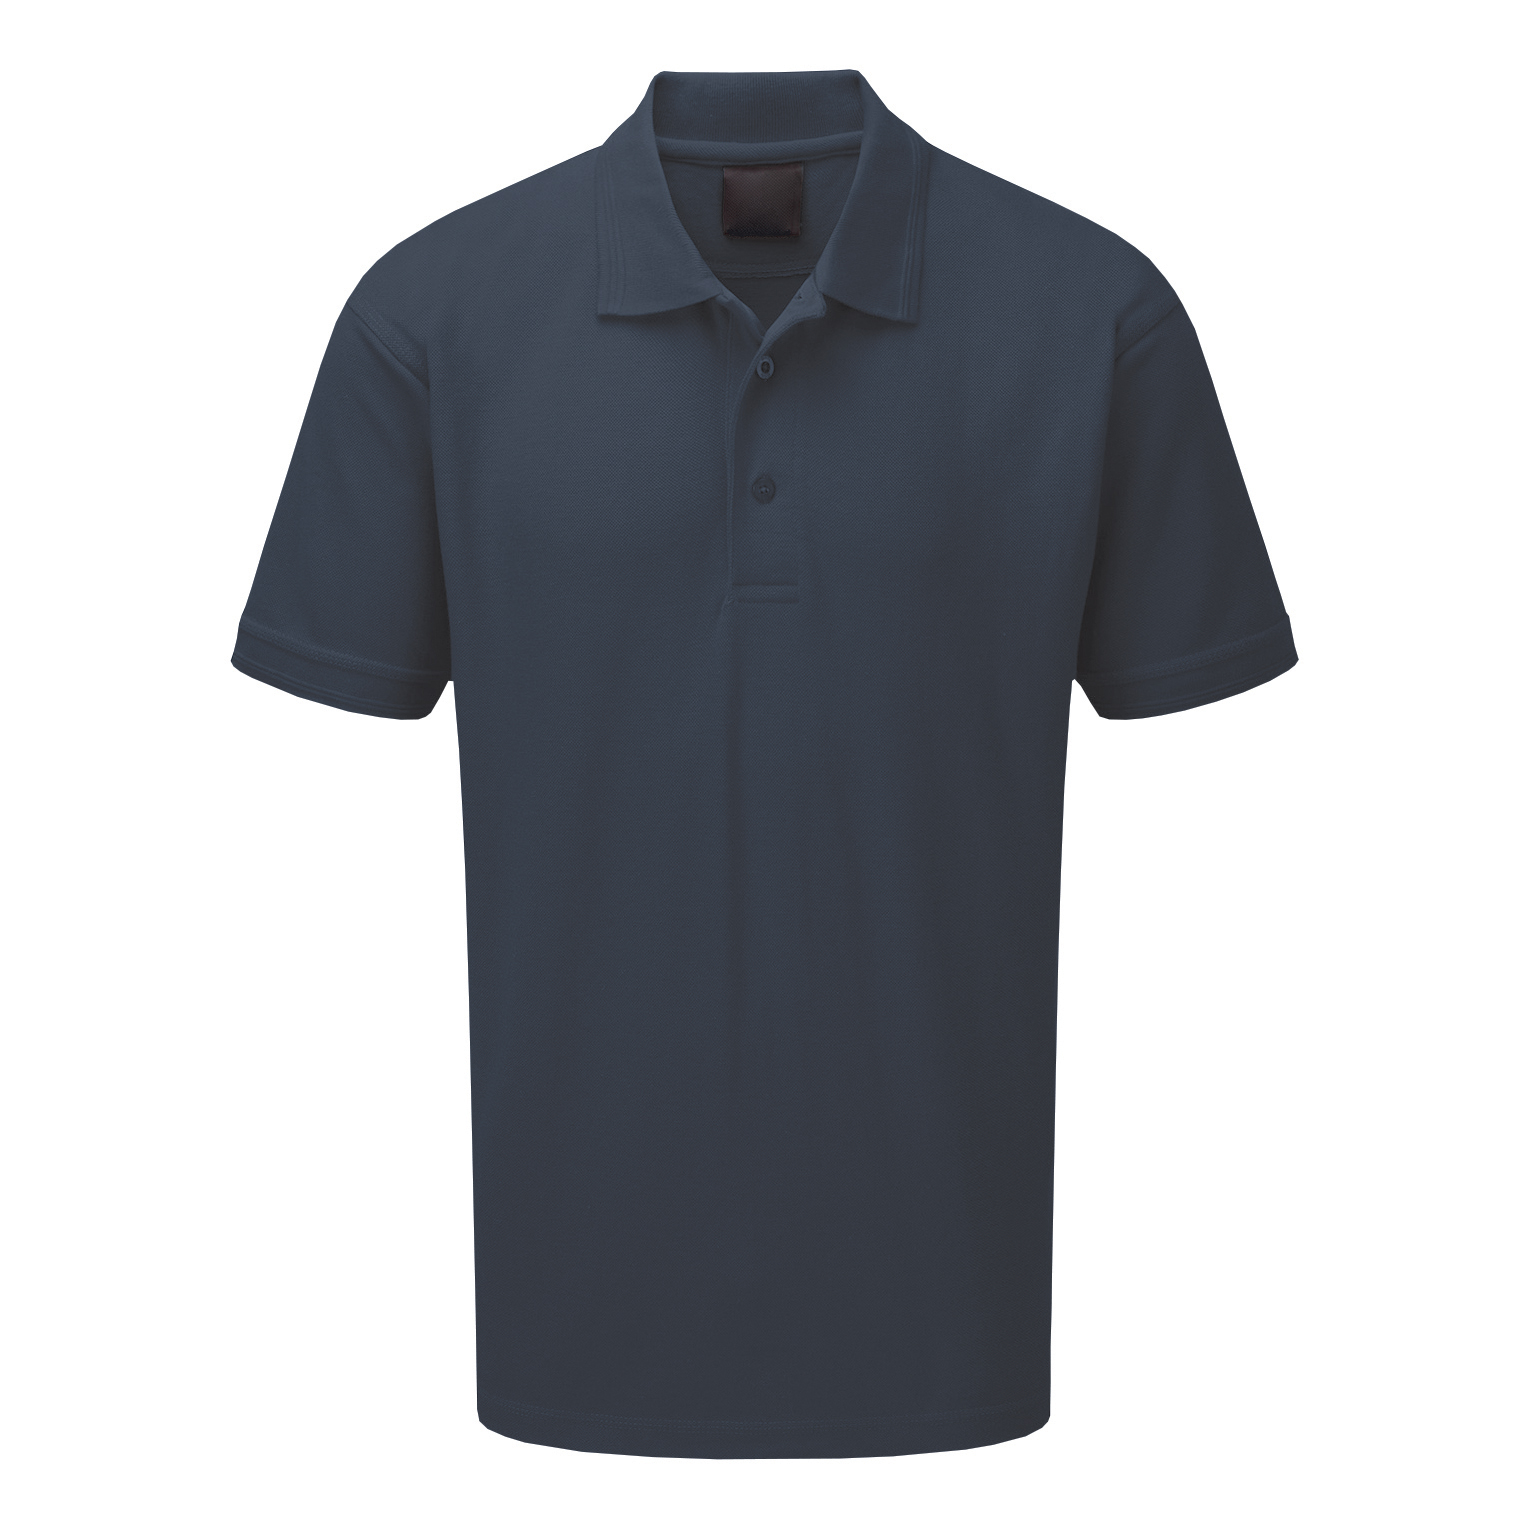 Premium Polo Shirt Triple Button 220gsm Polycotton Small Graphite Ref CLPKSGYS *Approx 3 Day Leadtime*